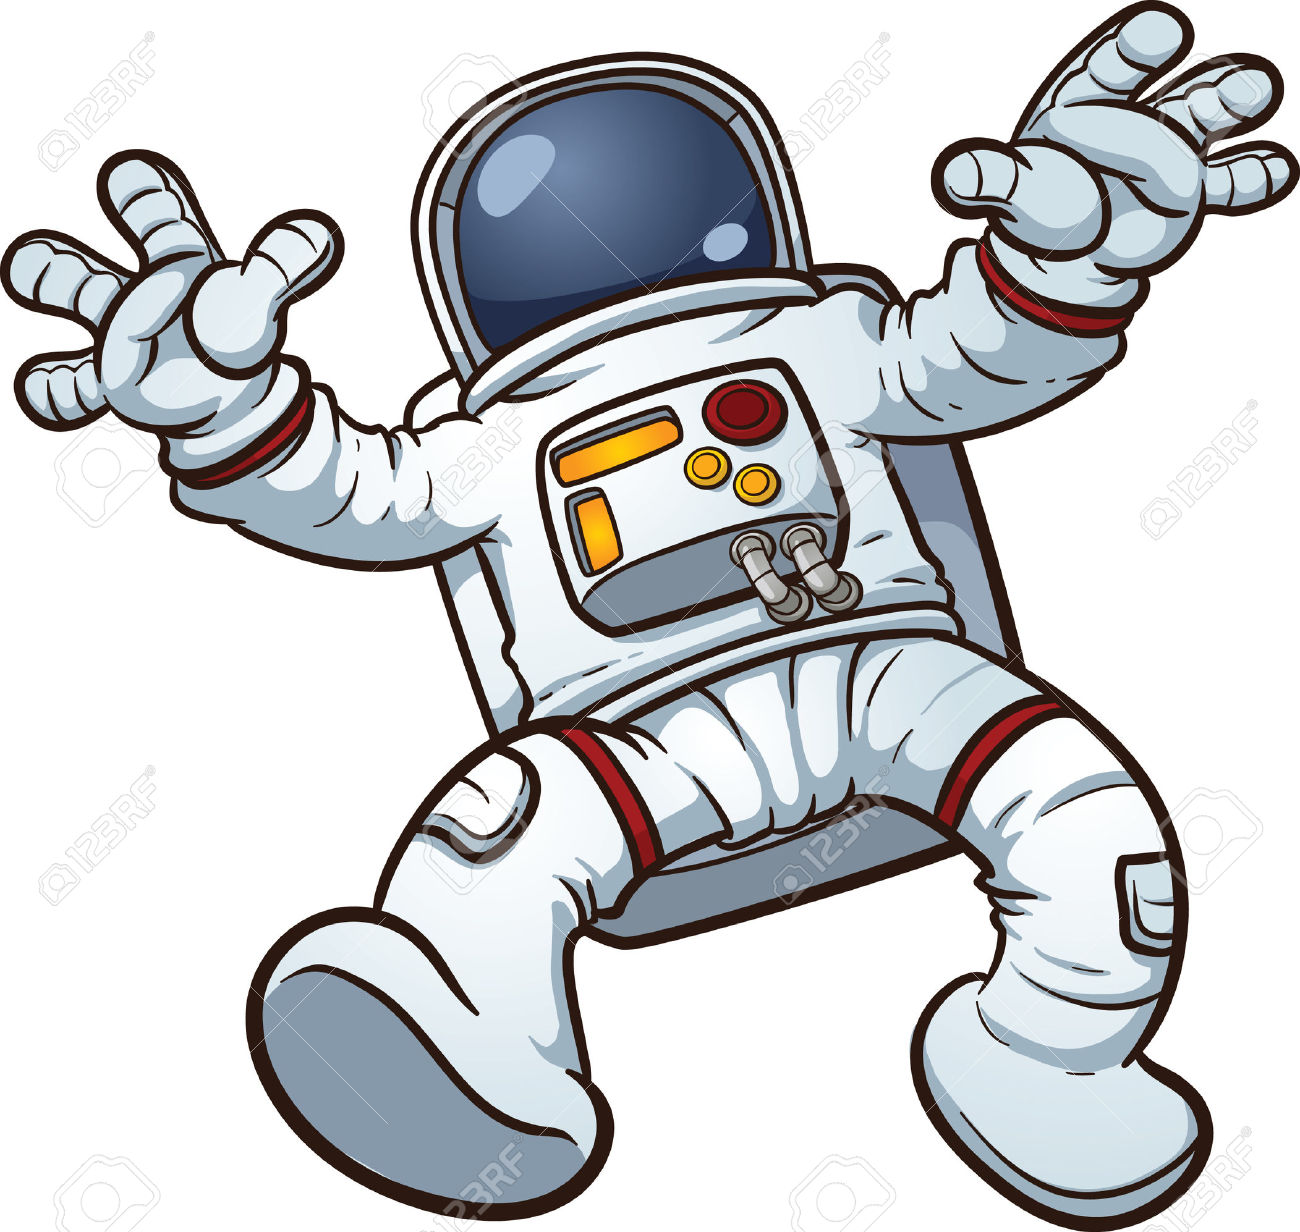 Space suit clipart - Clipground